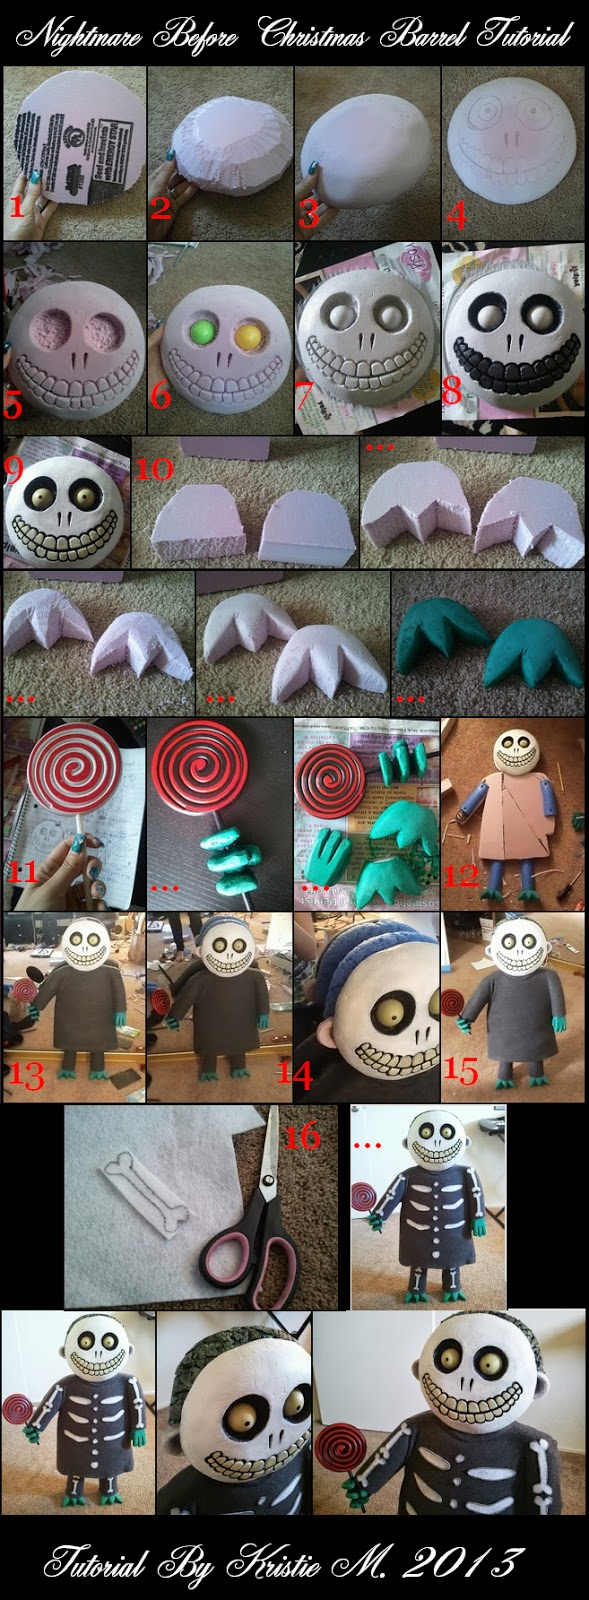 Diy nightmare before christmas halloween props 2013 detailed tutorial corresponds with the picture tutorial above solutioingenieria Choice Image